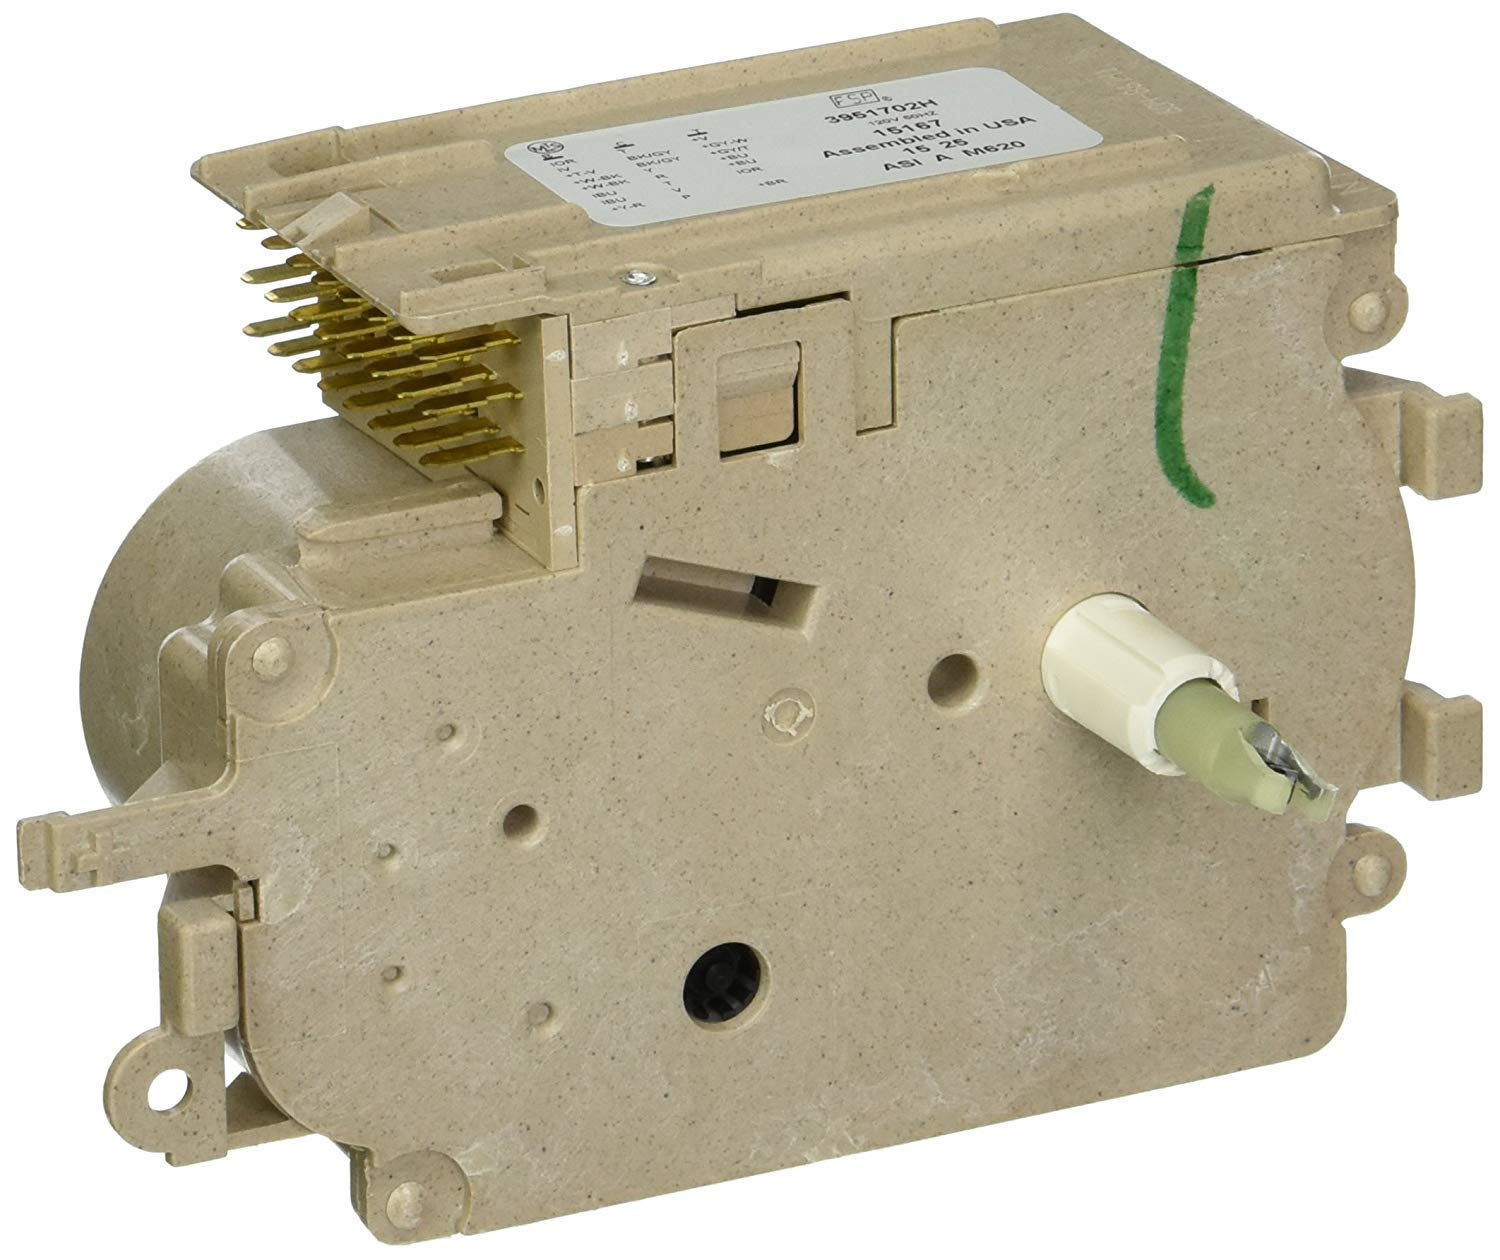 Express Parts Timer Bwr984992 Replacement For Whirlpool Washer Model Lsq9500lq0 95730 Everything Else